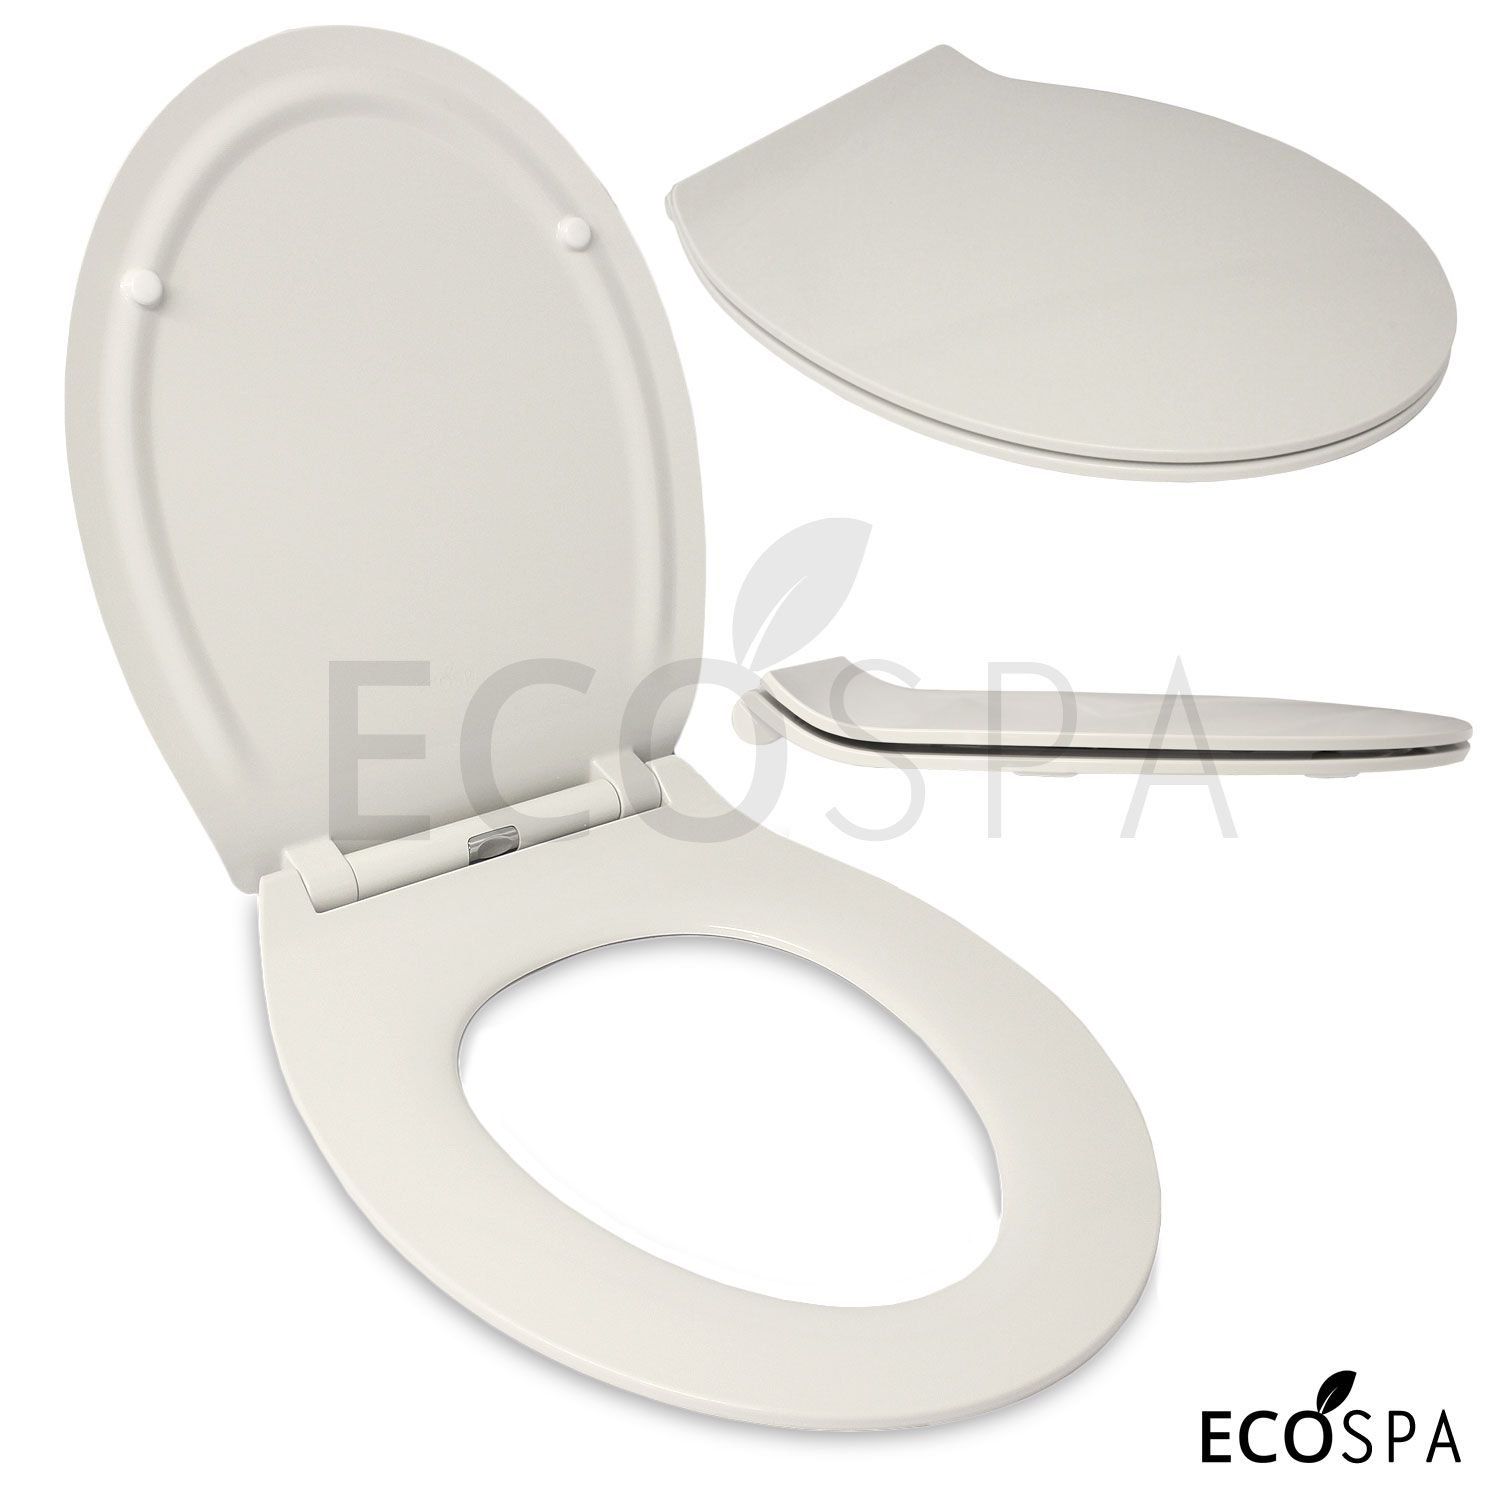 Luxury Oval Design Slimline Toilet Seat With Top Fixing Hinges